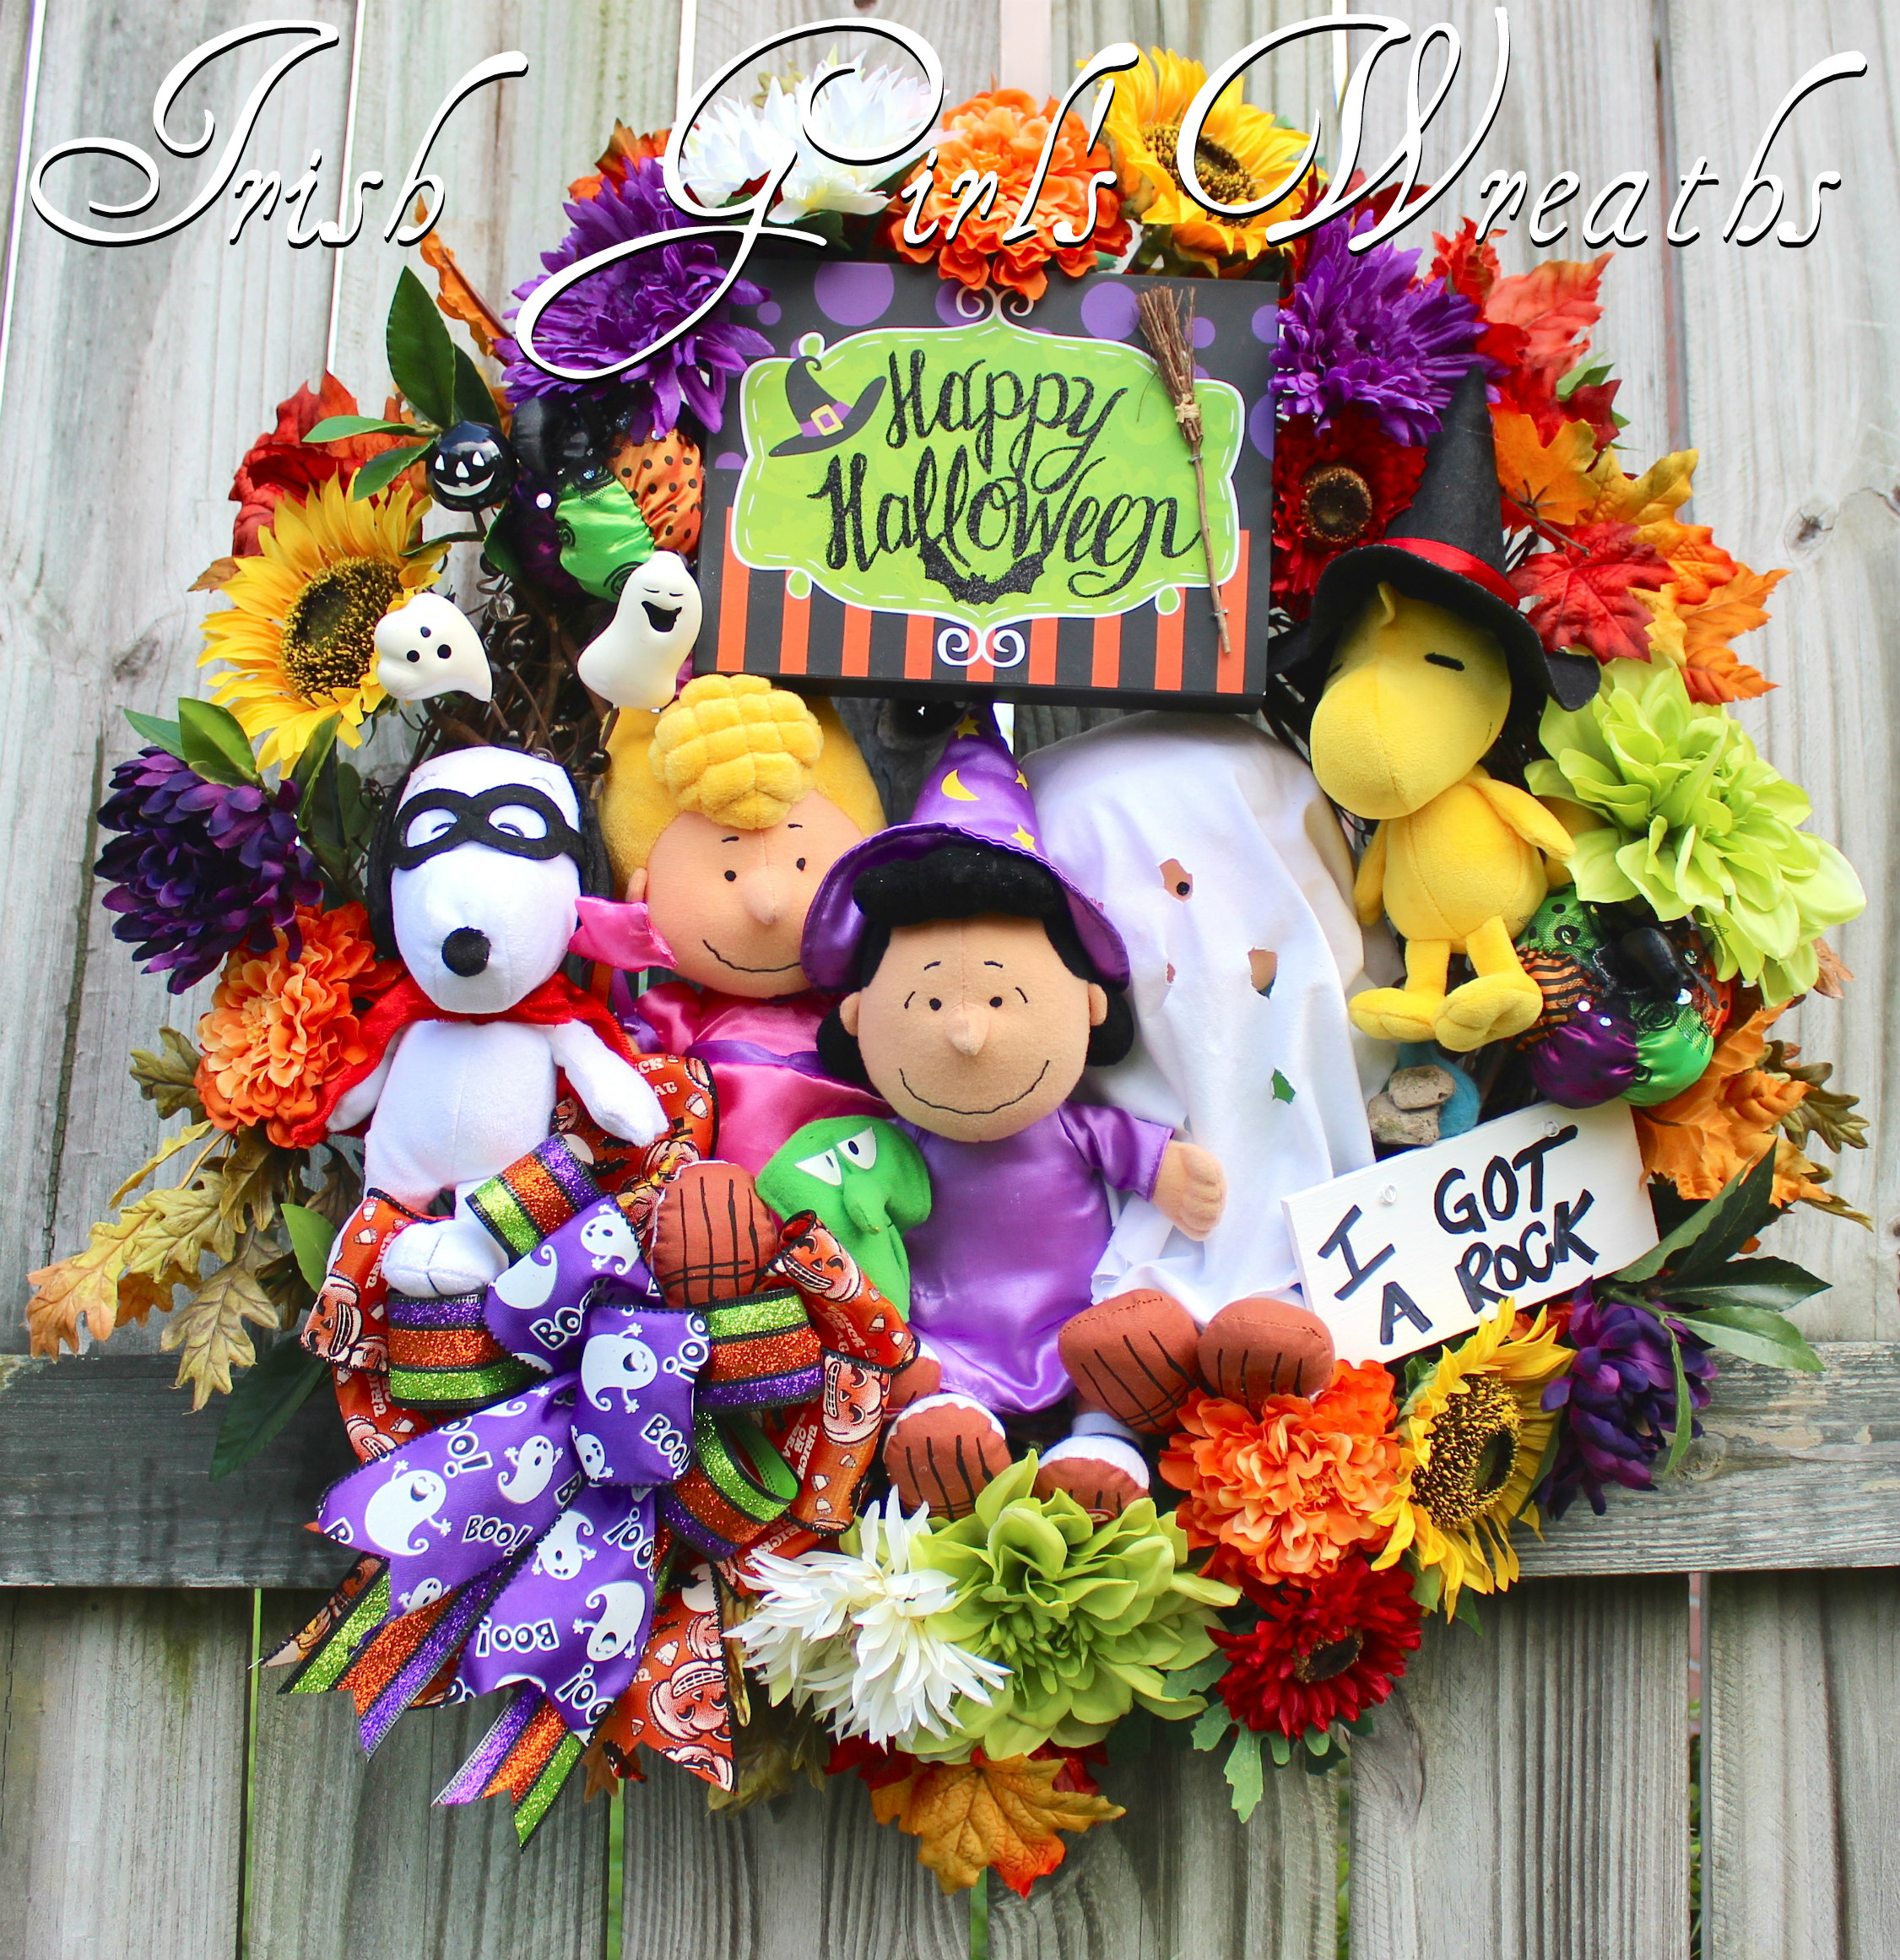 XL Deluxe Peanuts Gang Happy Halloween Wreath, Charlie Brown Trick Treat Halloween Wreath